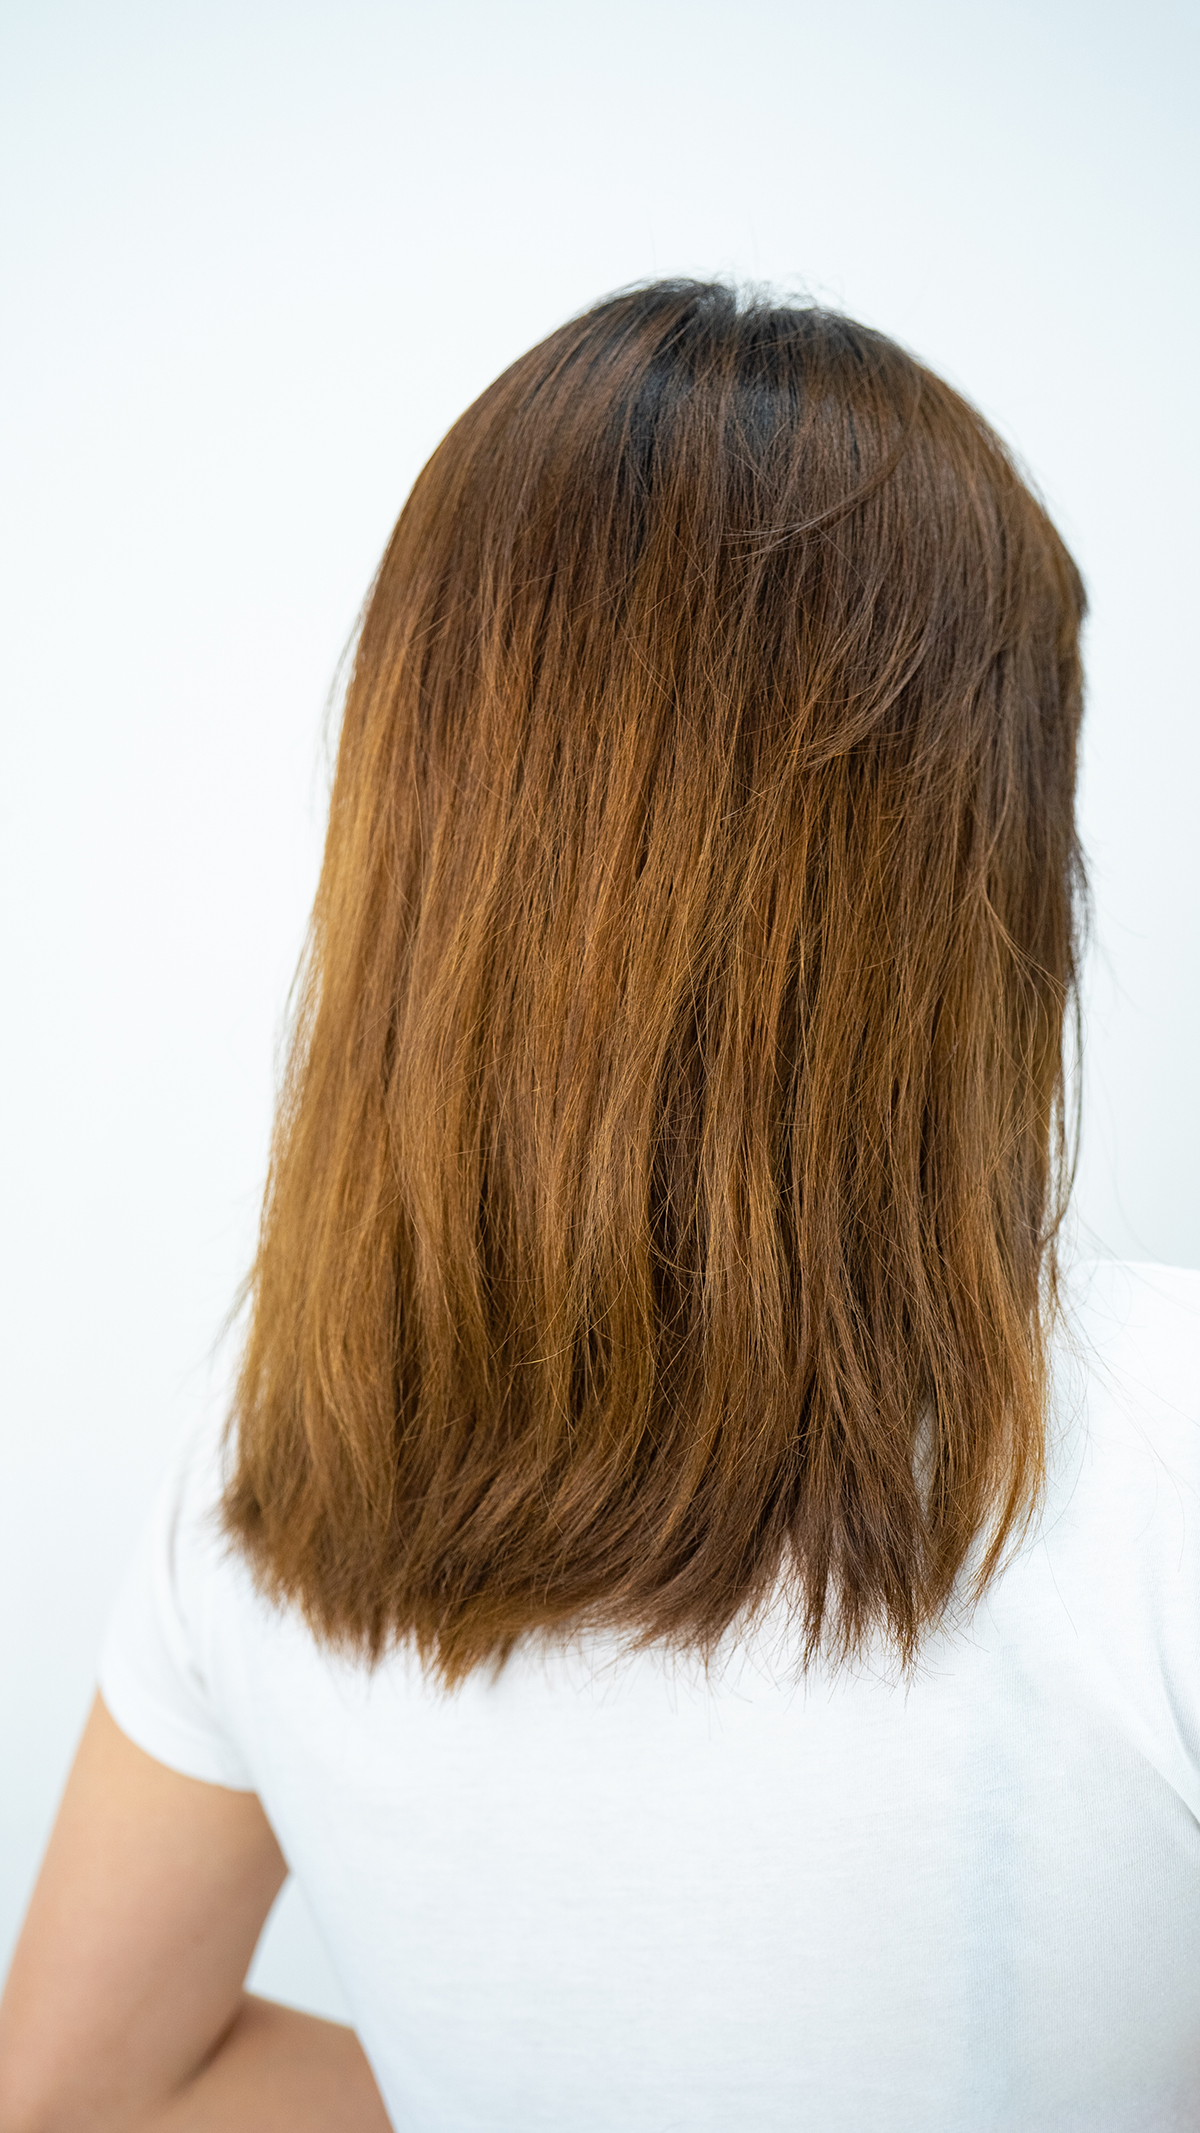 Back view of bleached hair after Chanamu S Leave-in Treatment